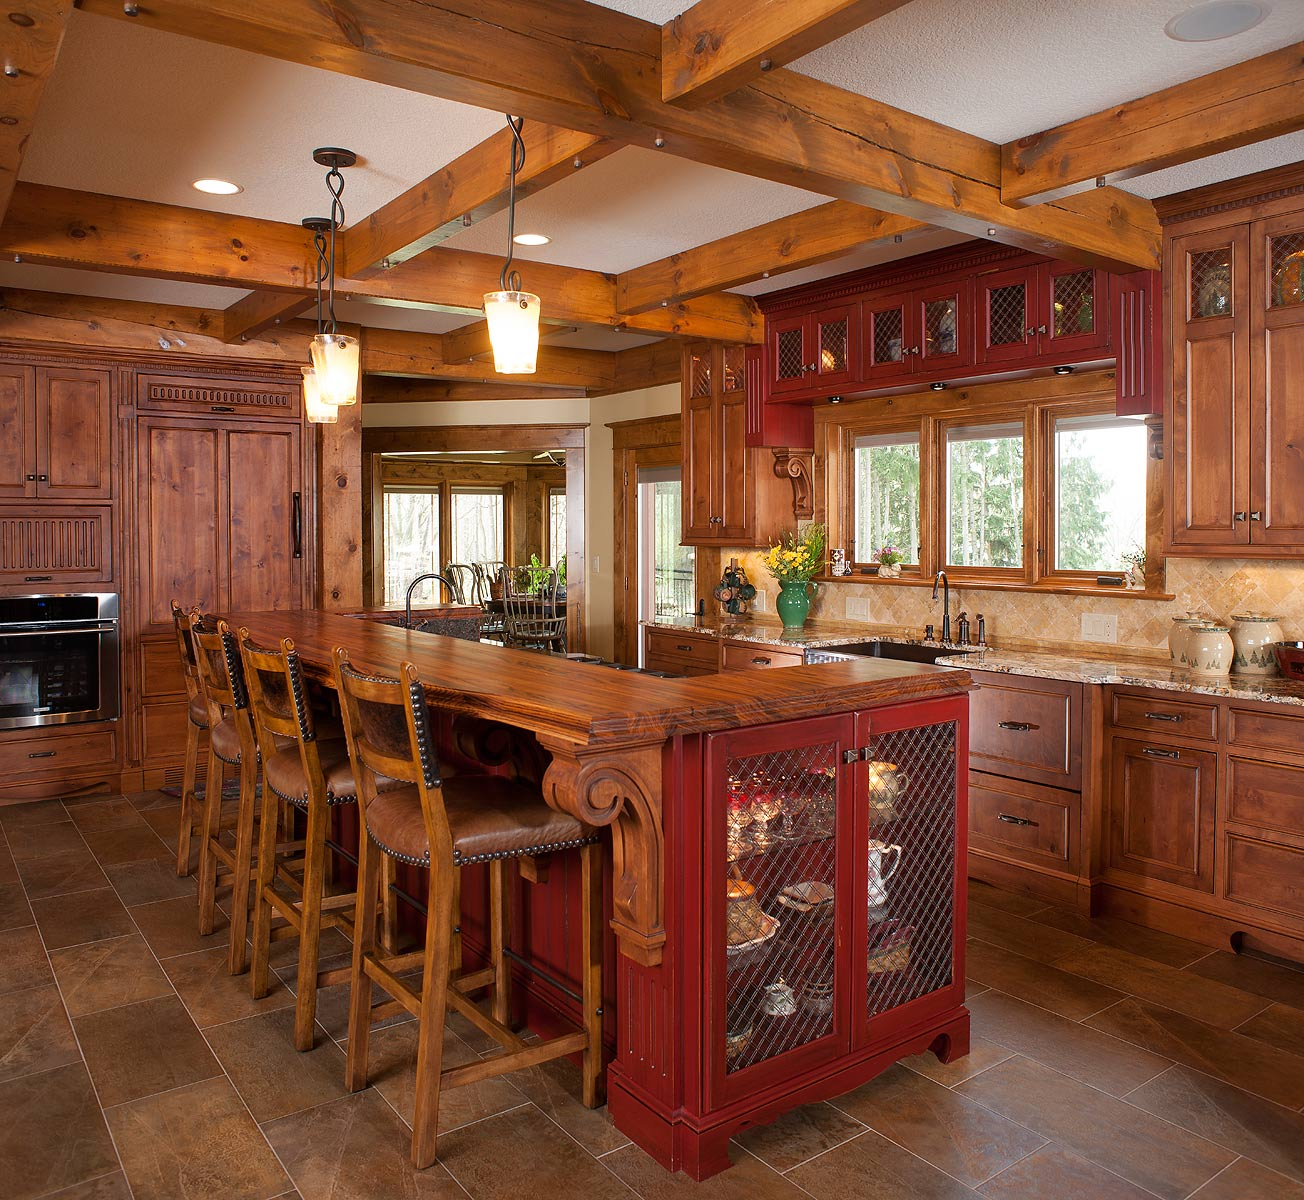 Home Design Ideas Book: Mullet Cabinet Rustic Kitchen Retreat